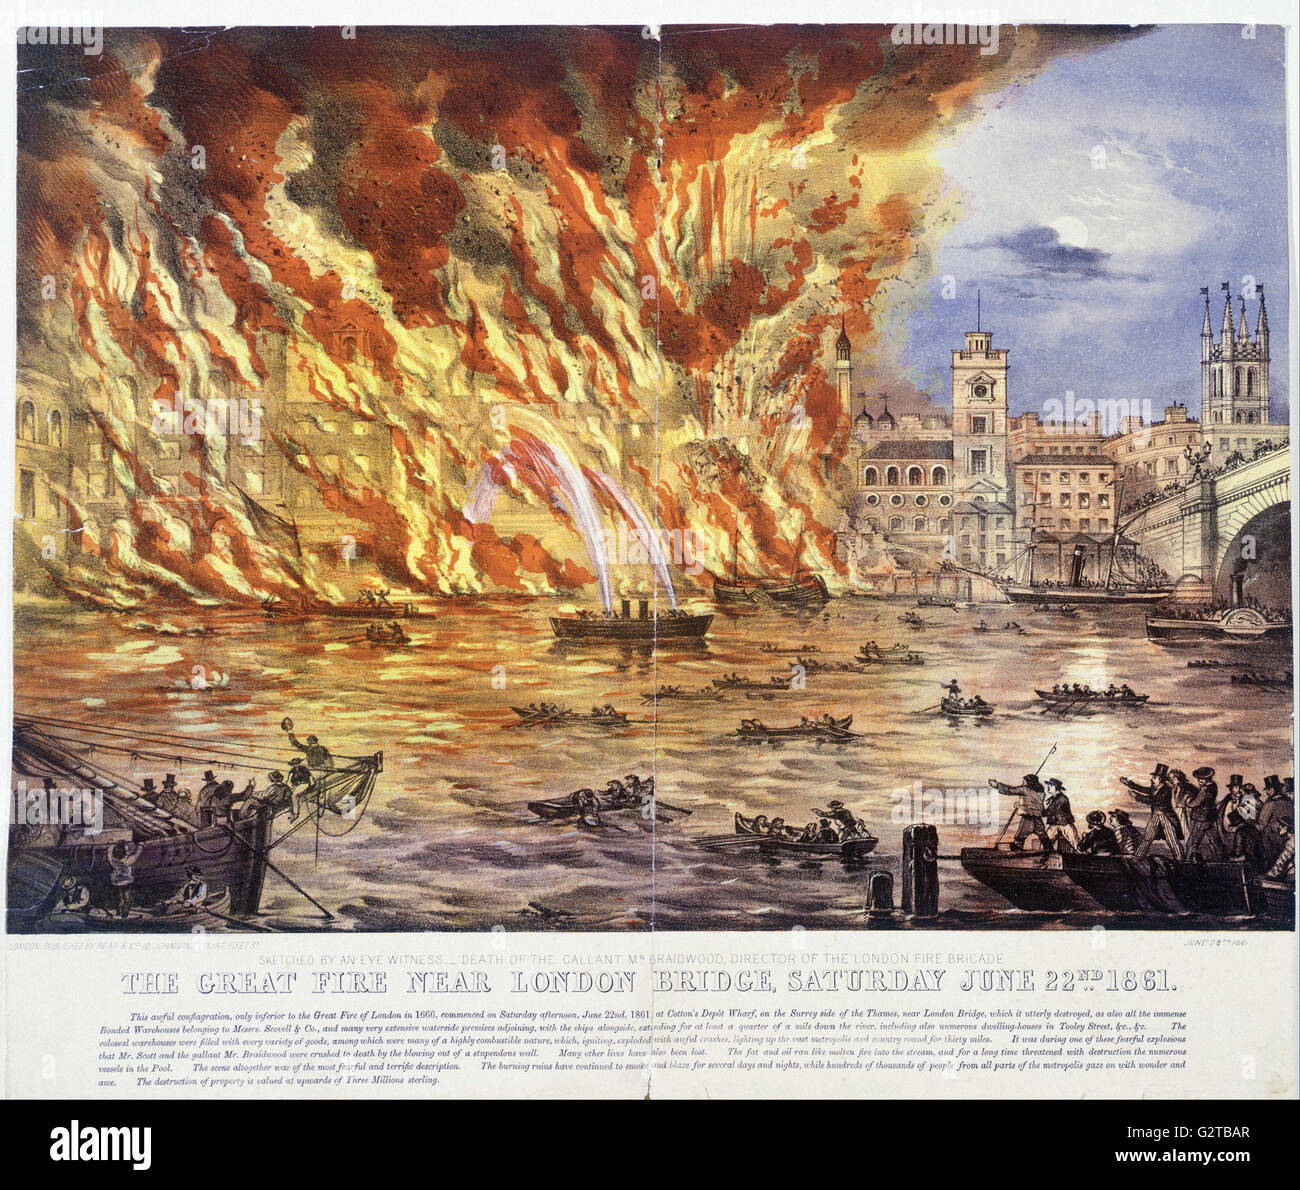 Read and Company - print; coloured lithograph - The Great Fire Near London Bridge, Saturday June 22nd 1861 - - Stock Image